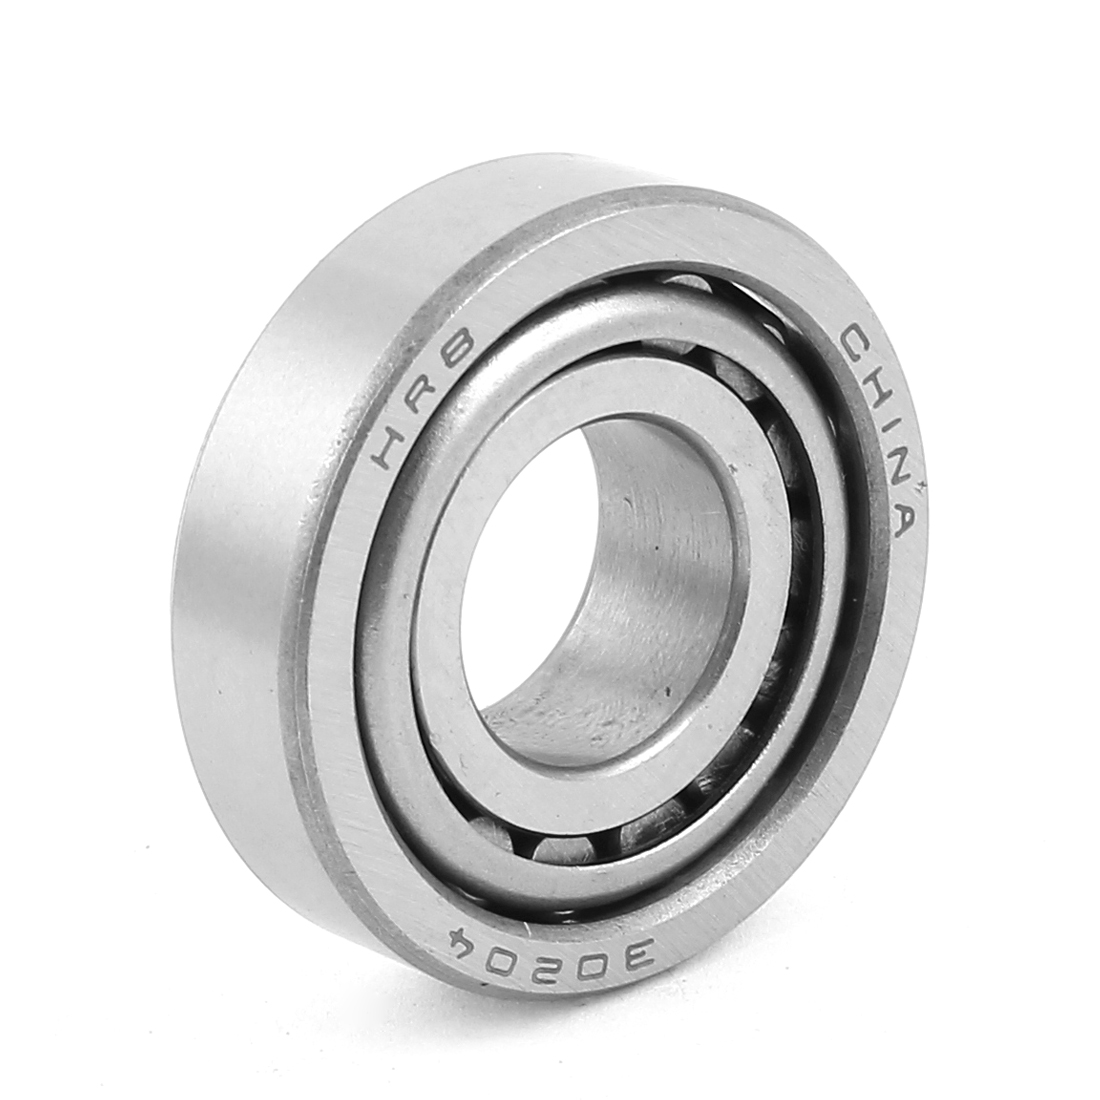 30204 Single Row Metal Tapered Roller Bearing Gray 21mm x 47mm x 15mm